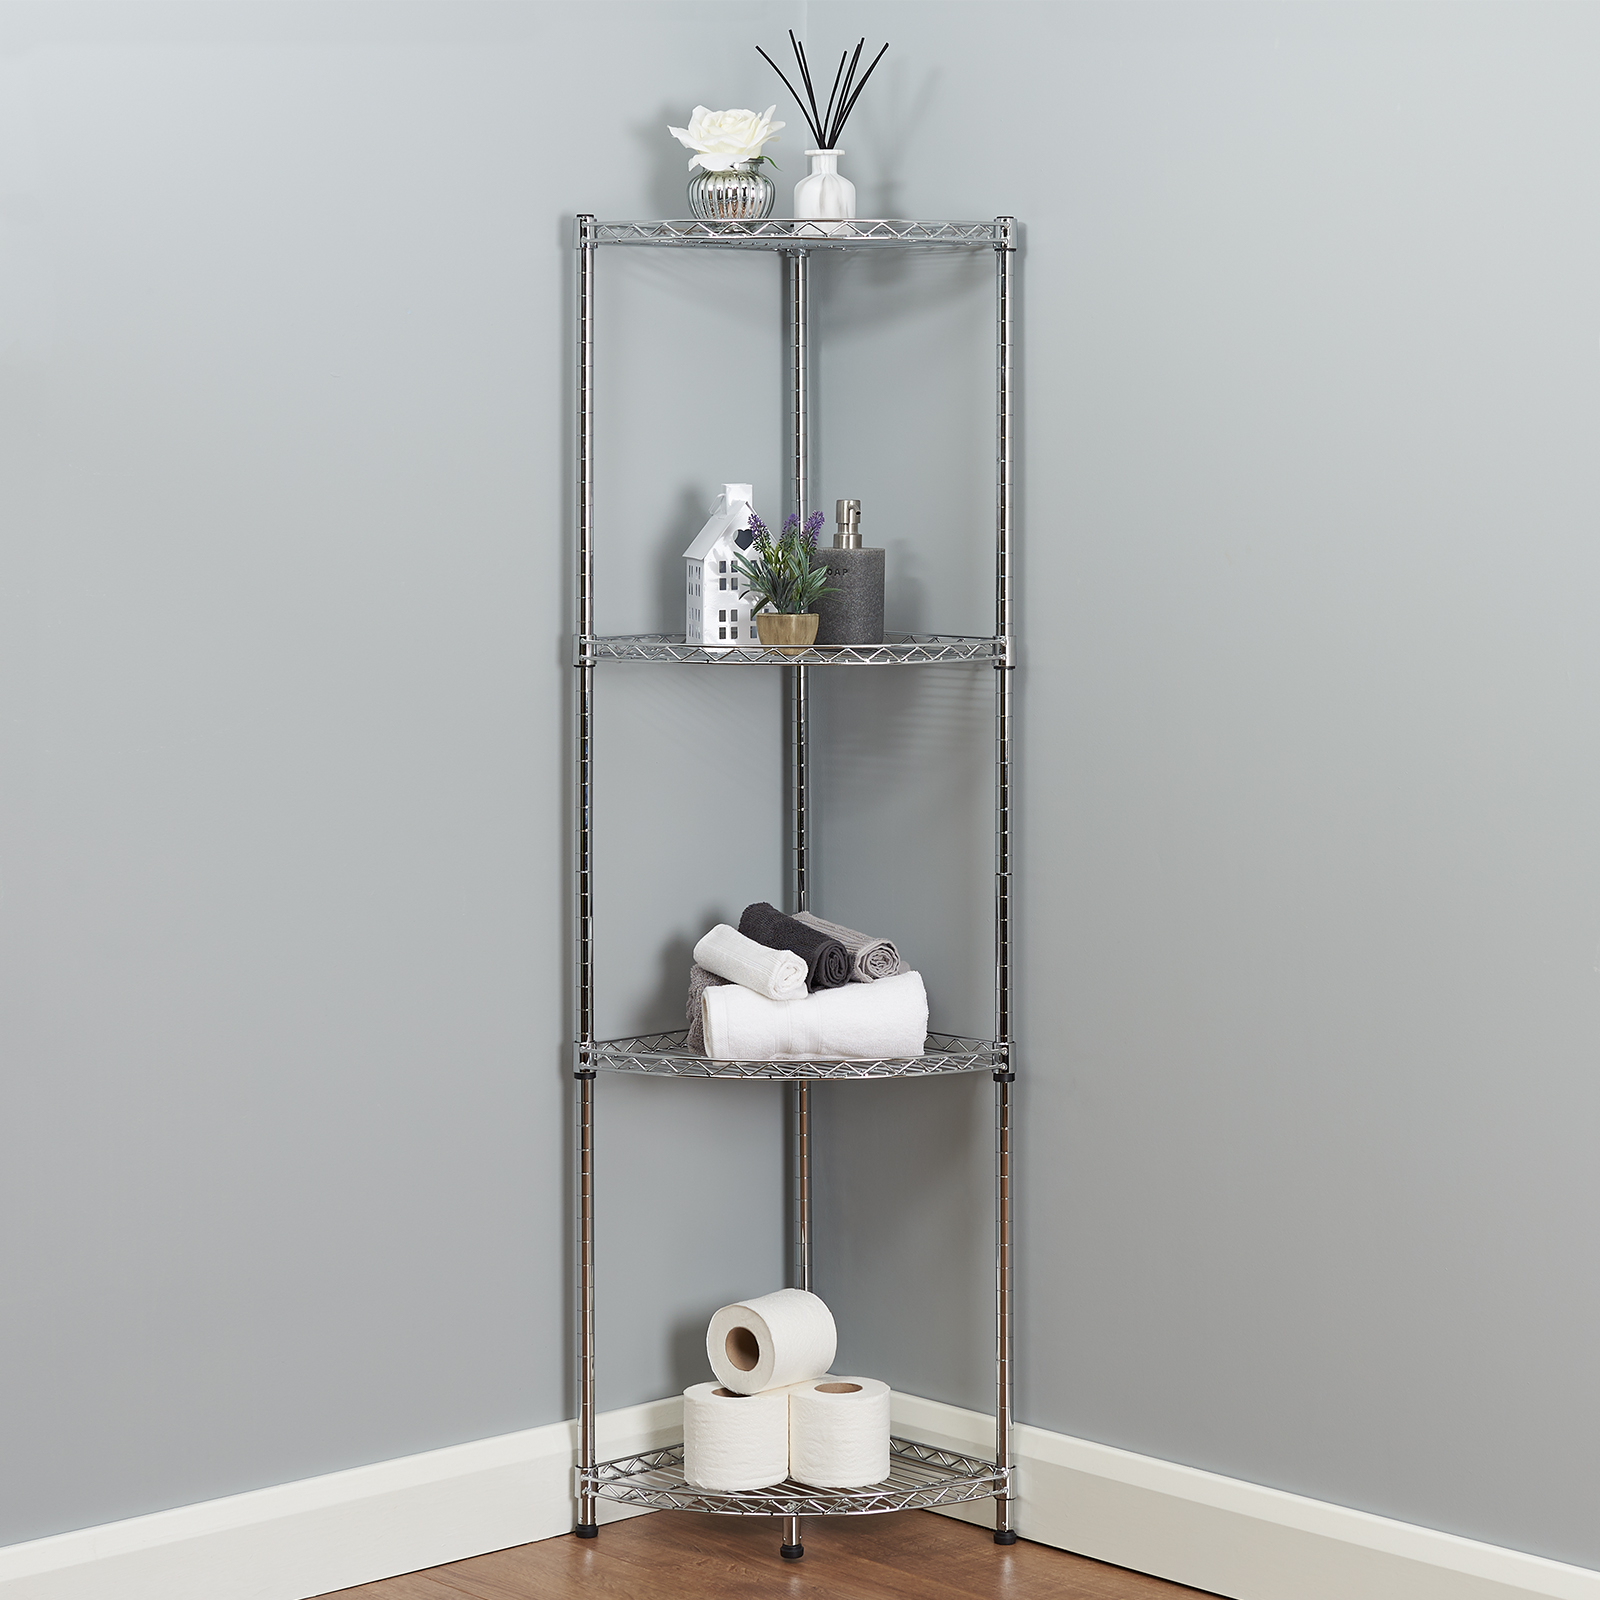 Details About 4 Tier Corner Bathroom Storage Shelves Metal Chrome Shelving Unit Display Rack for sizing 1600 X 1600